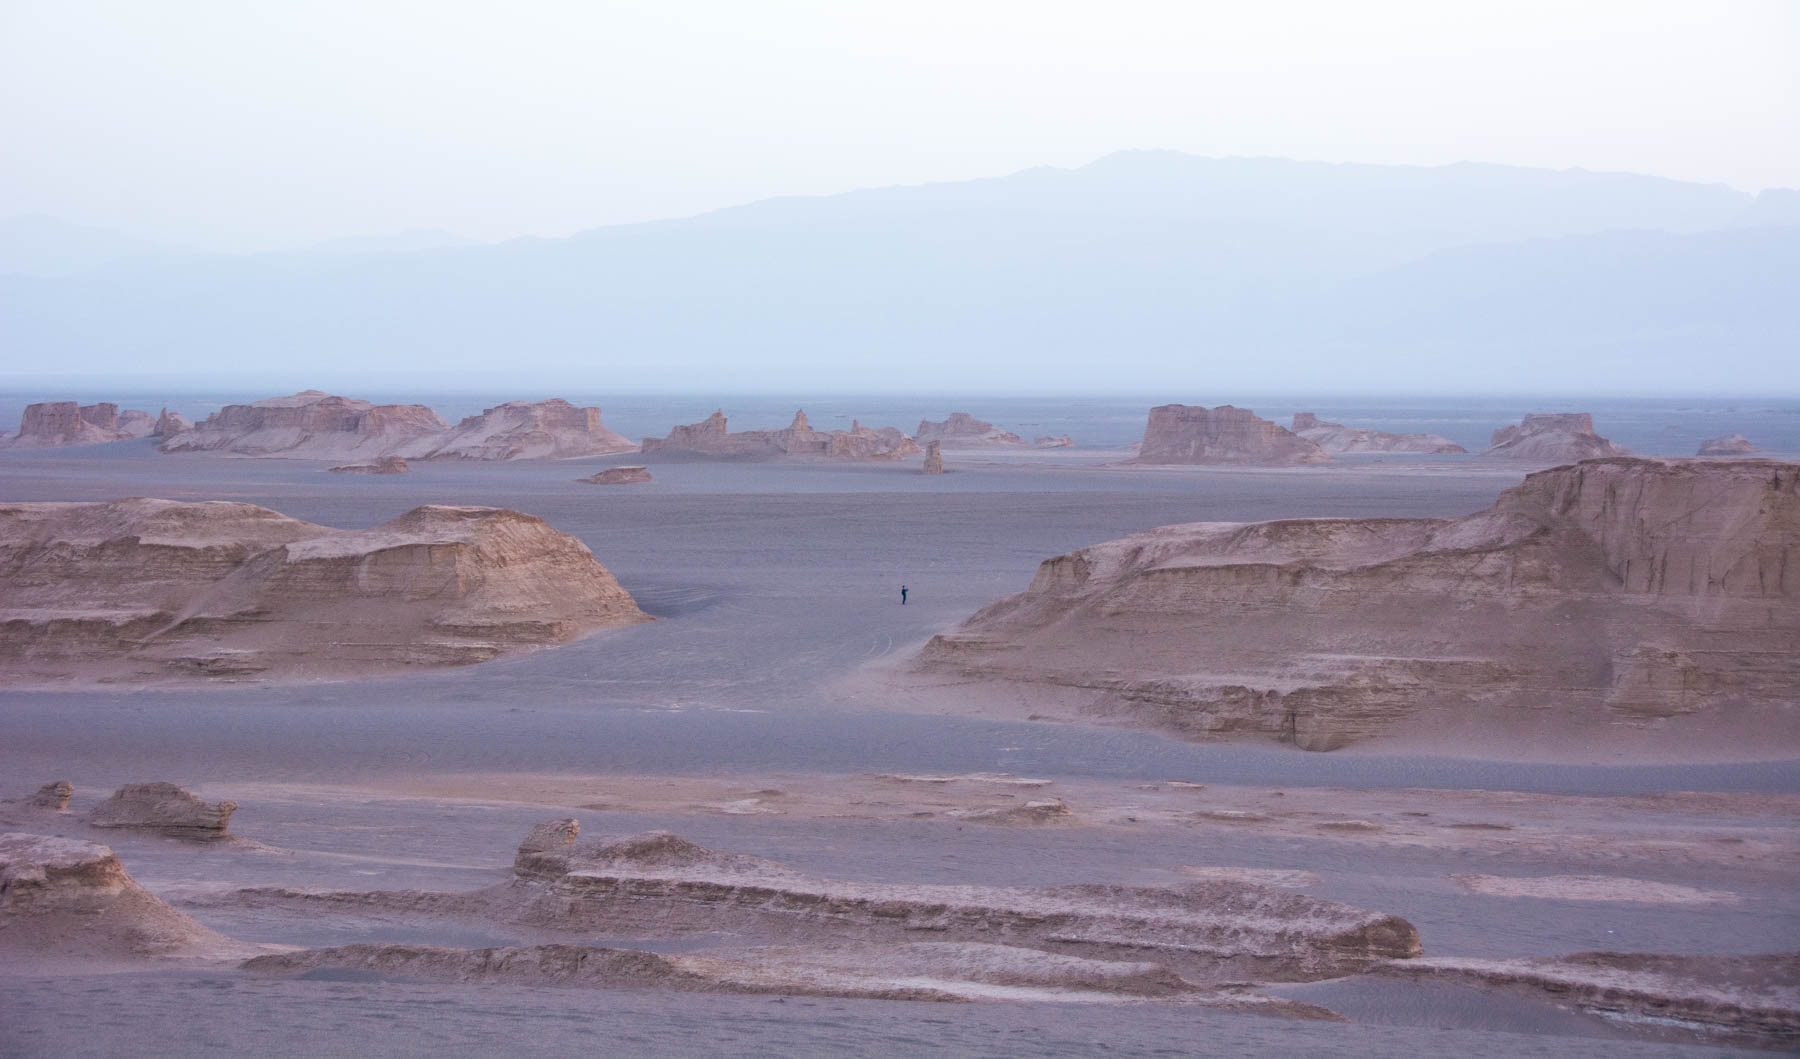 A man wandering around in the Kaluts of Iran